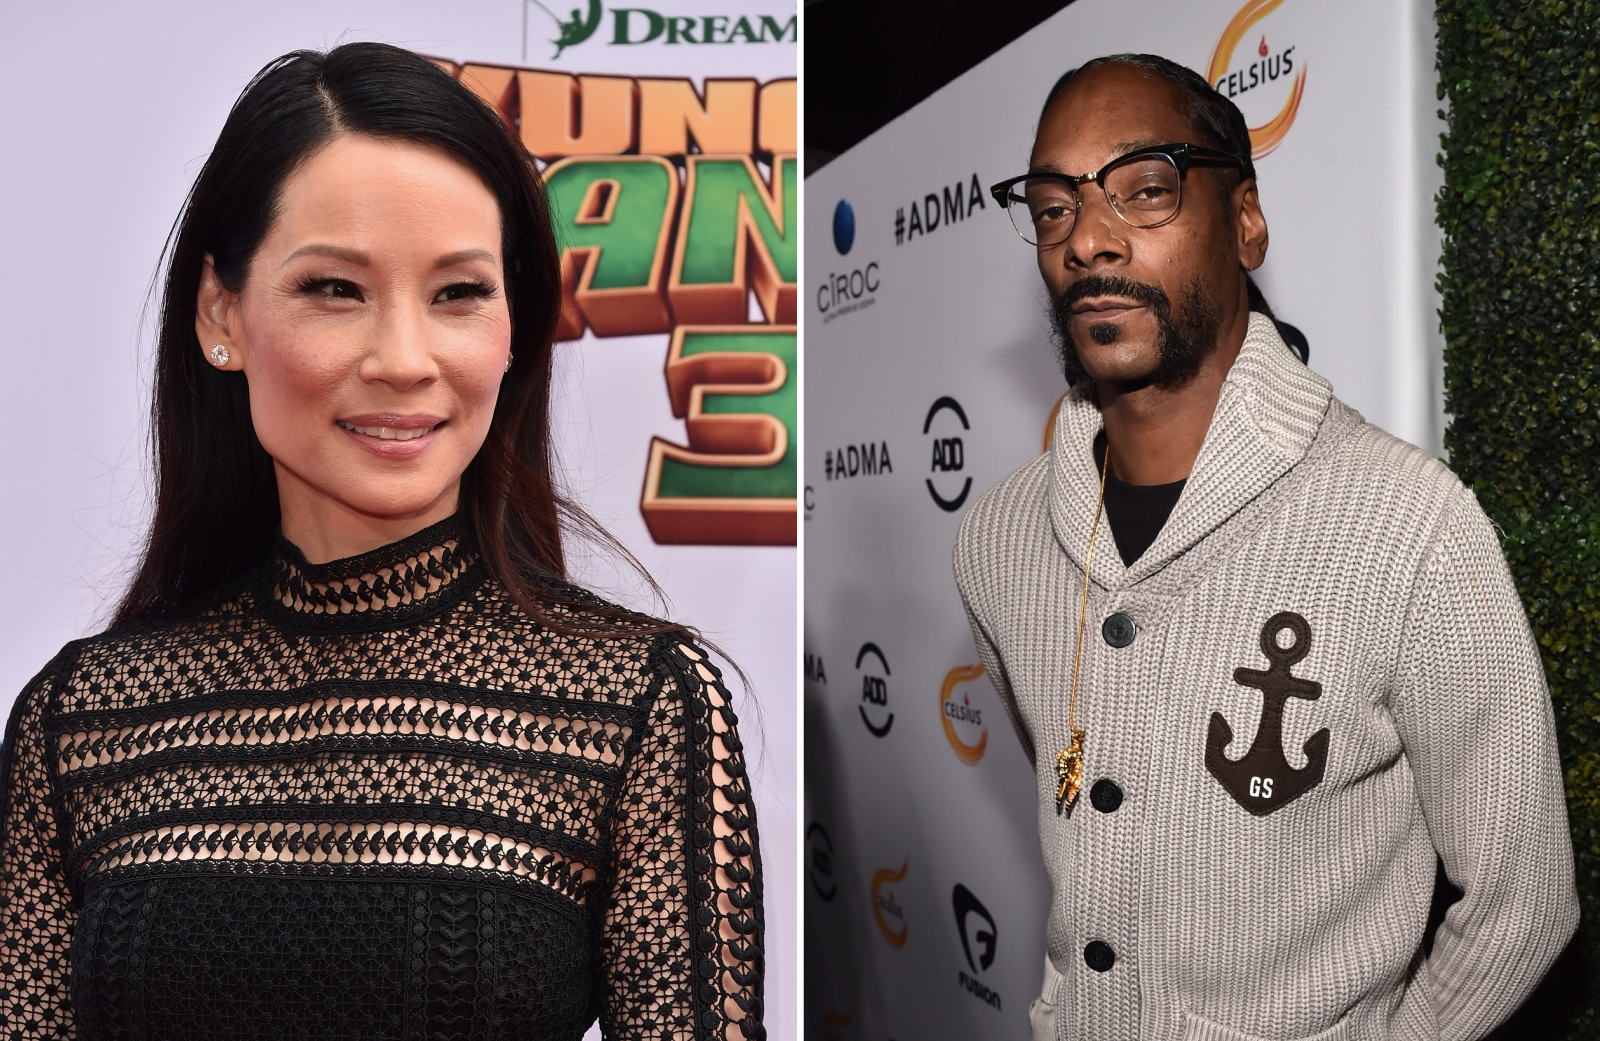 Lucy Liu and Snoop Dogg